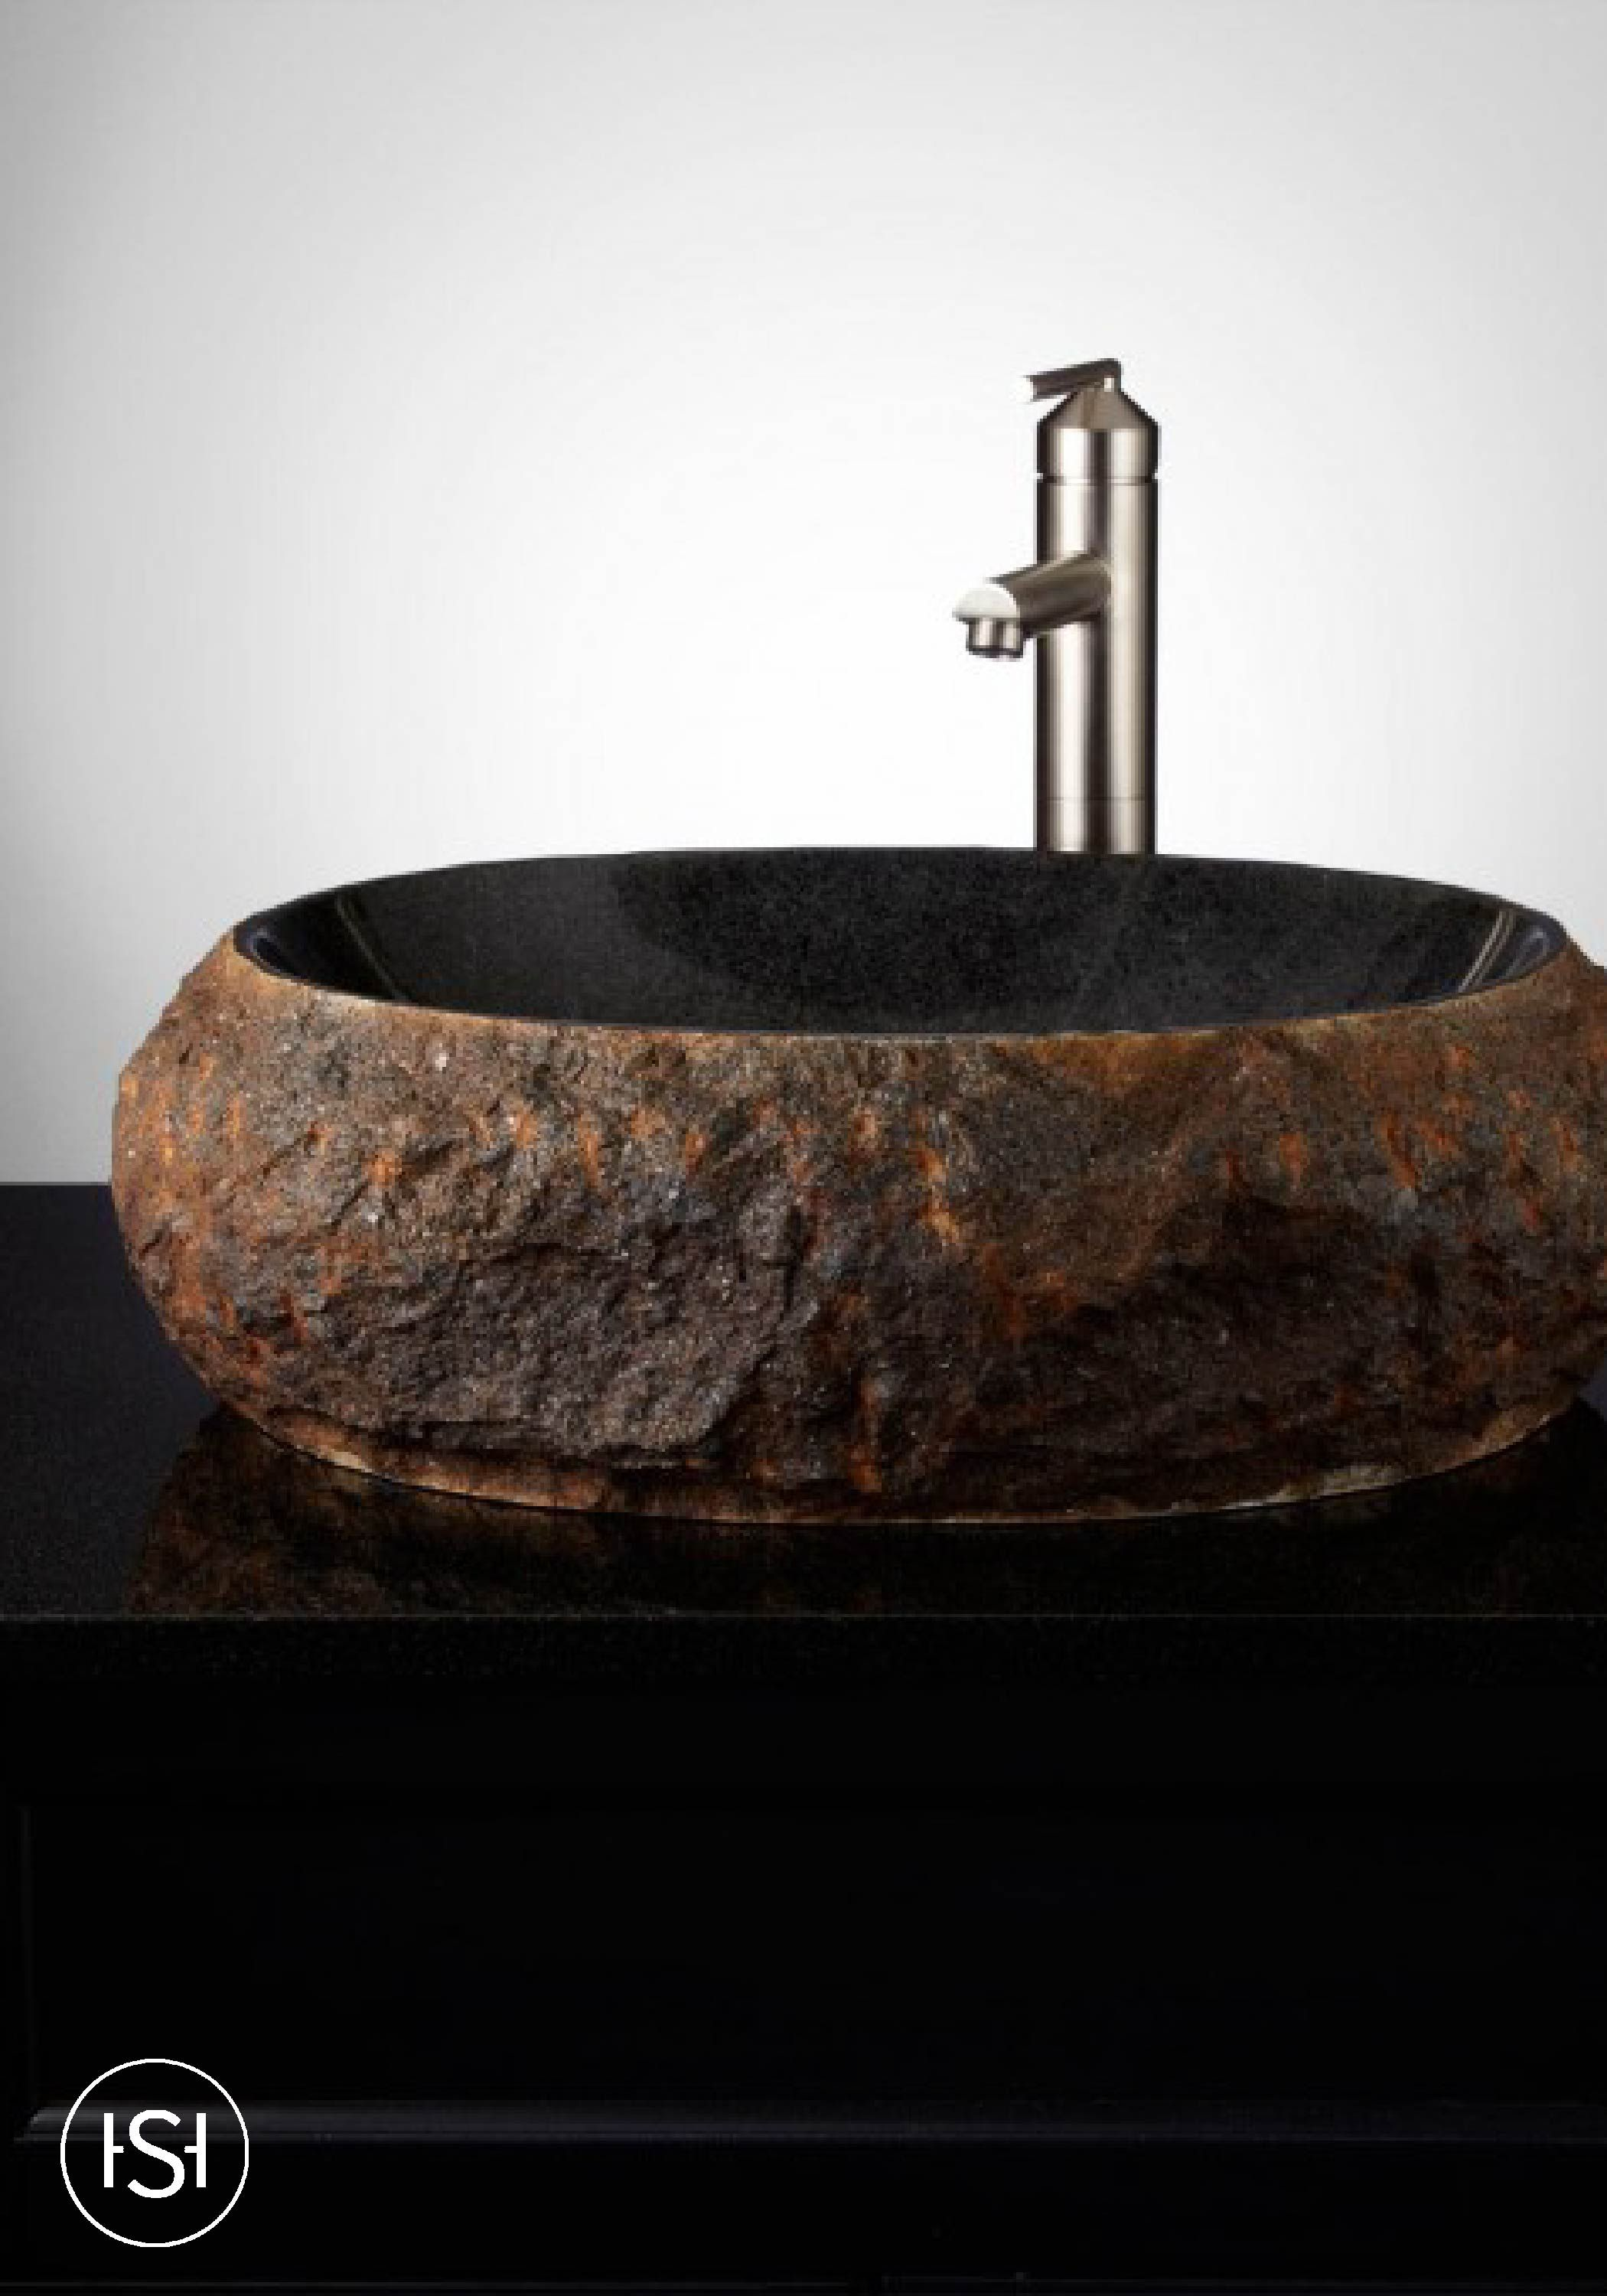 River Stone Vessel Sink Bathroom Natural Stone Sinks In